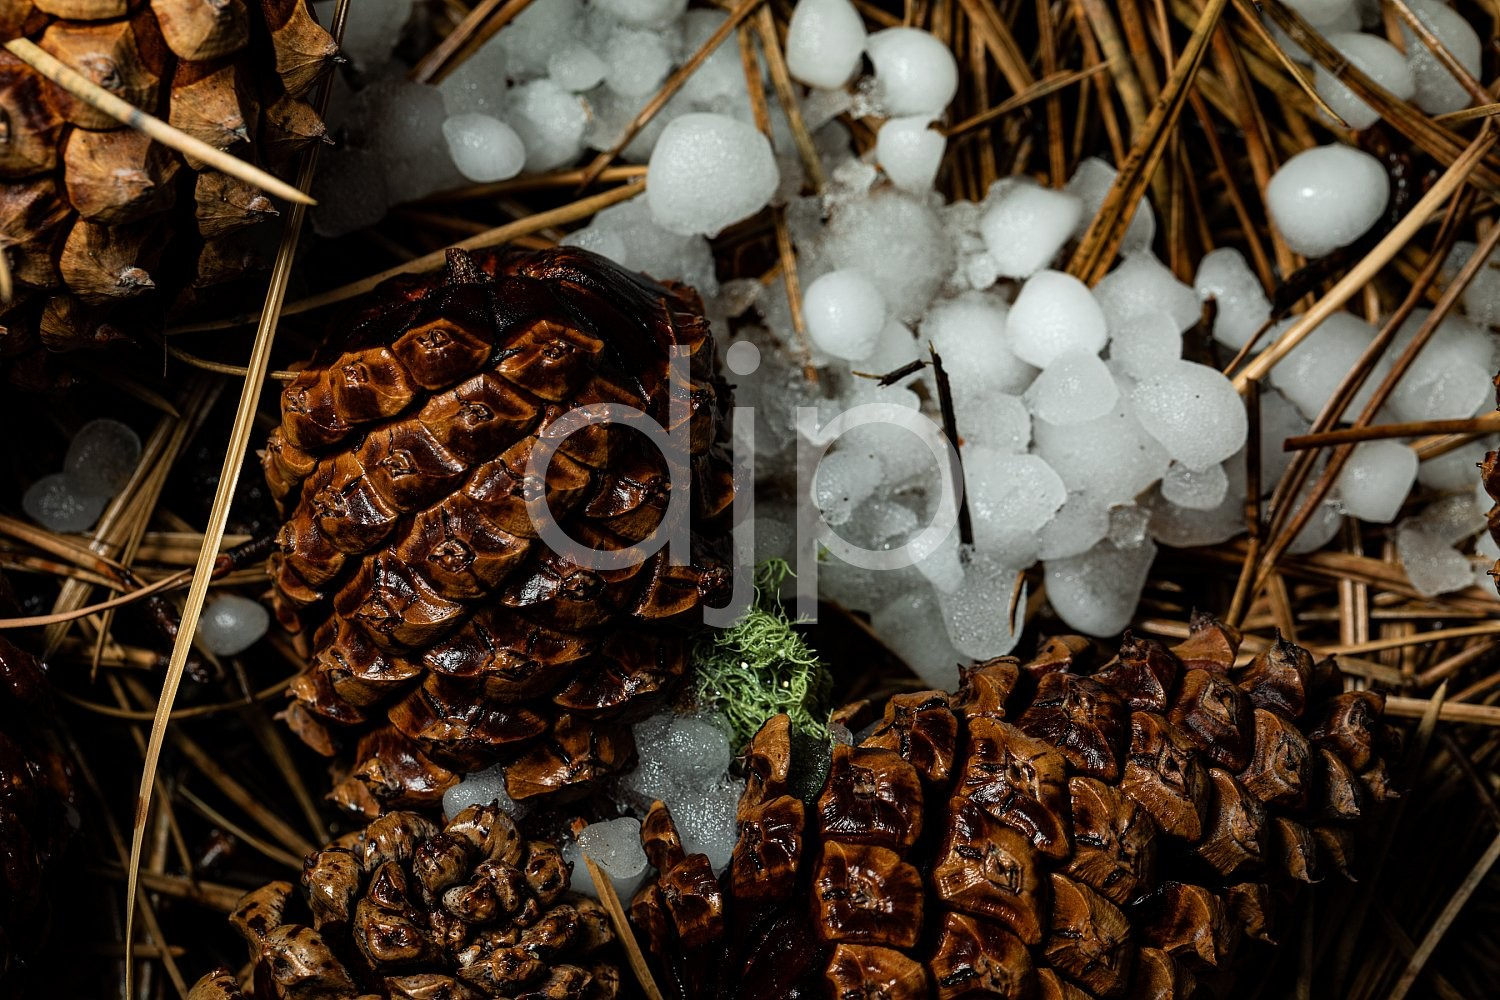 D Jones Photography, New Mexico, Santa Fe National Forest, djonesphoto, excursions with djp, hail, macro, nm, pinecone, quarantine, white, brown